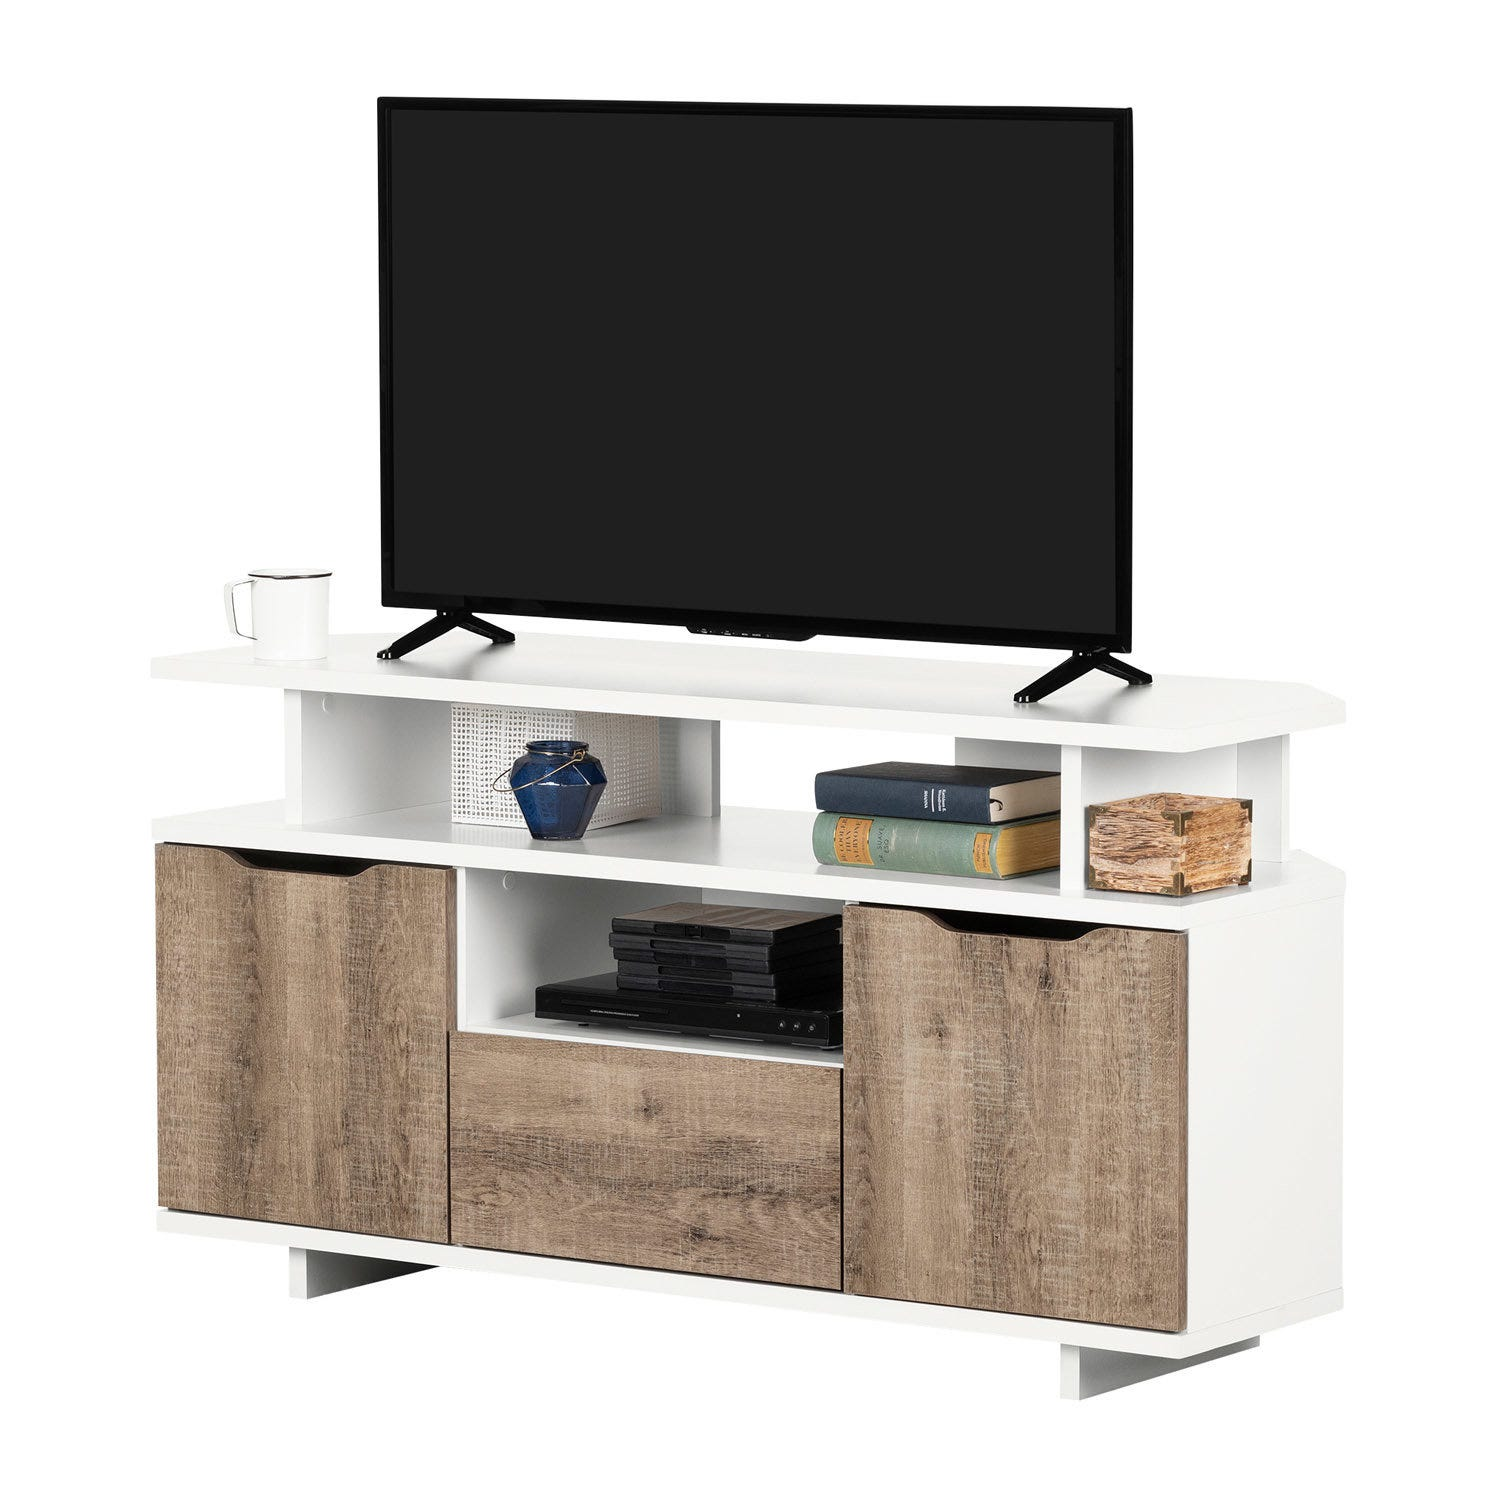 Meubles South Shore Corner Tv Stand For Tvs Up To 55 Rd Furniture